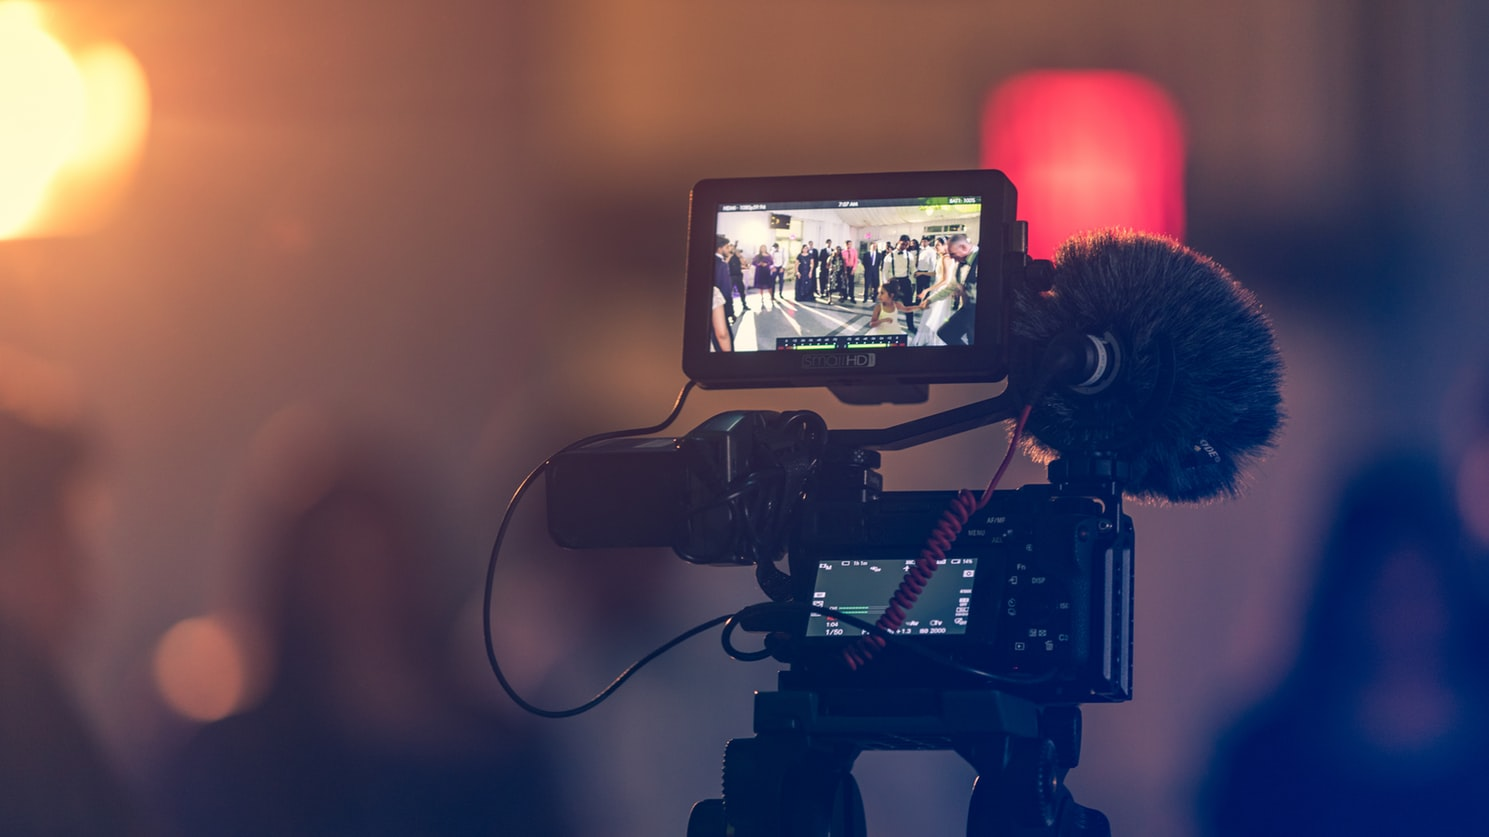 Seeking Paid Actor and Crew for Short Film